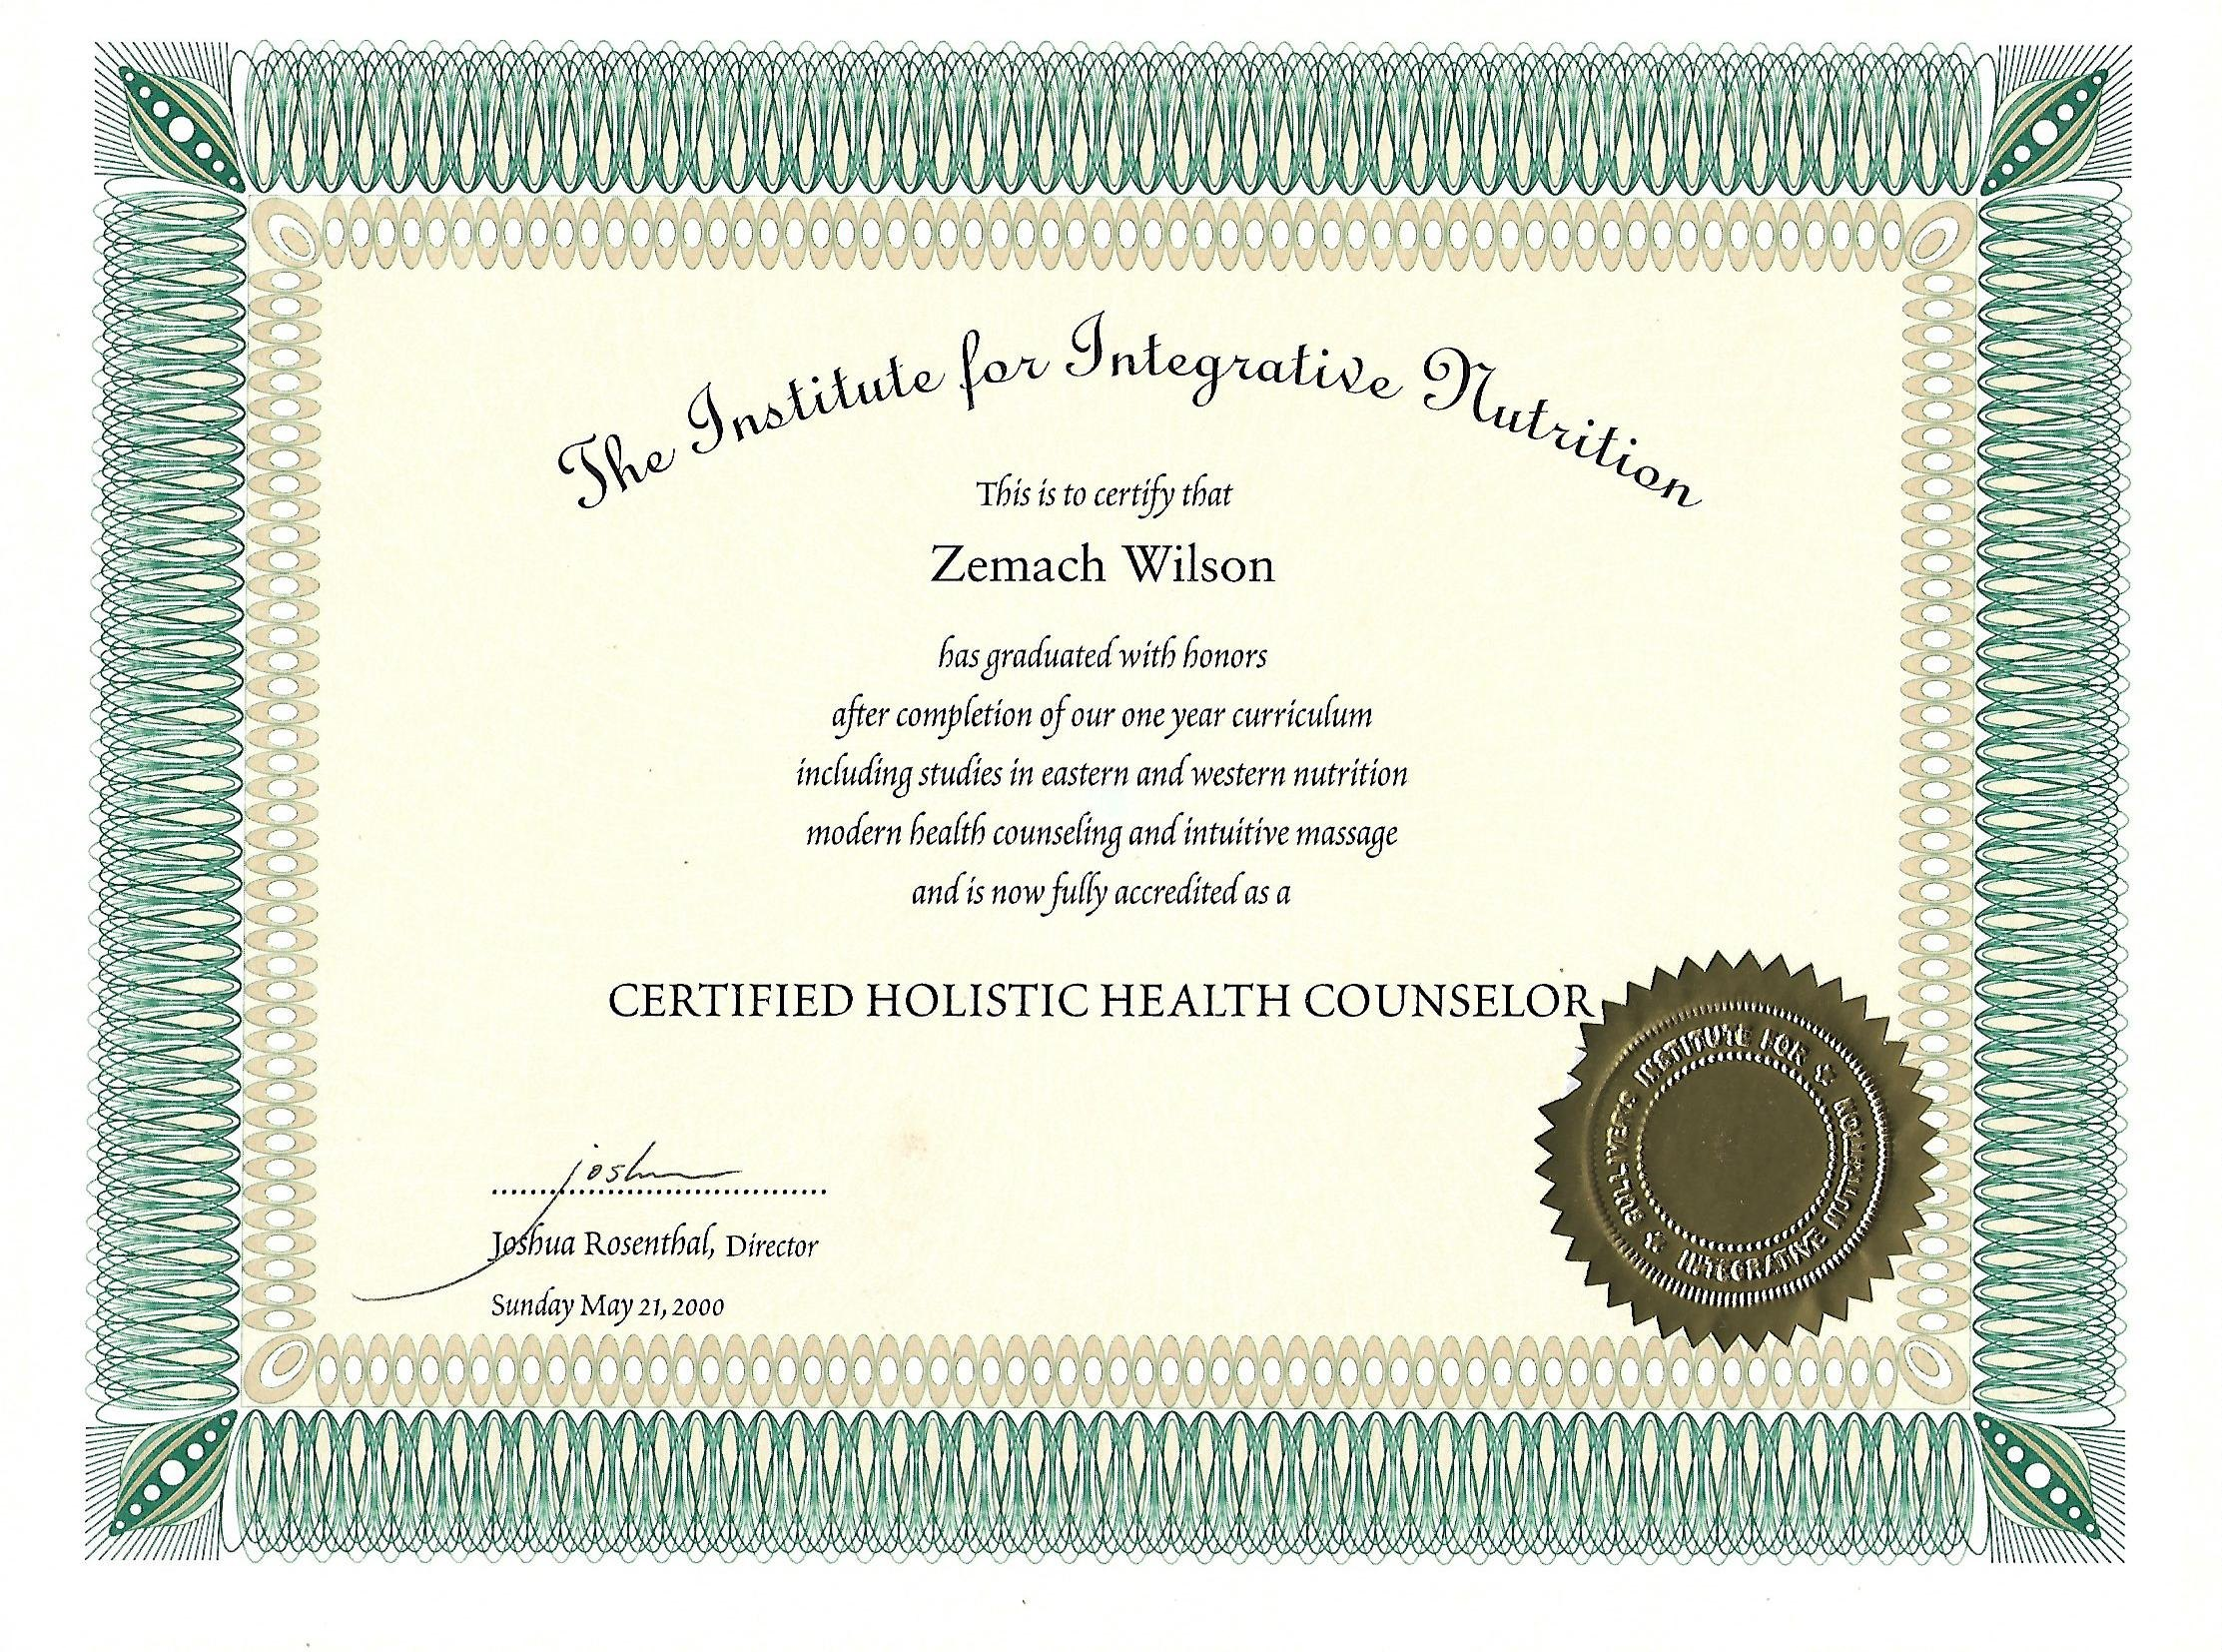 Nutritional counselor certification - Difference between